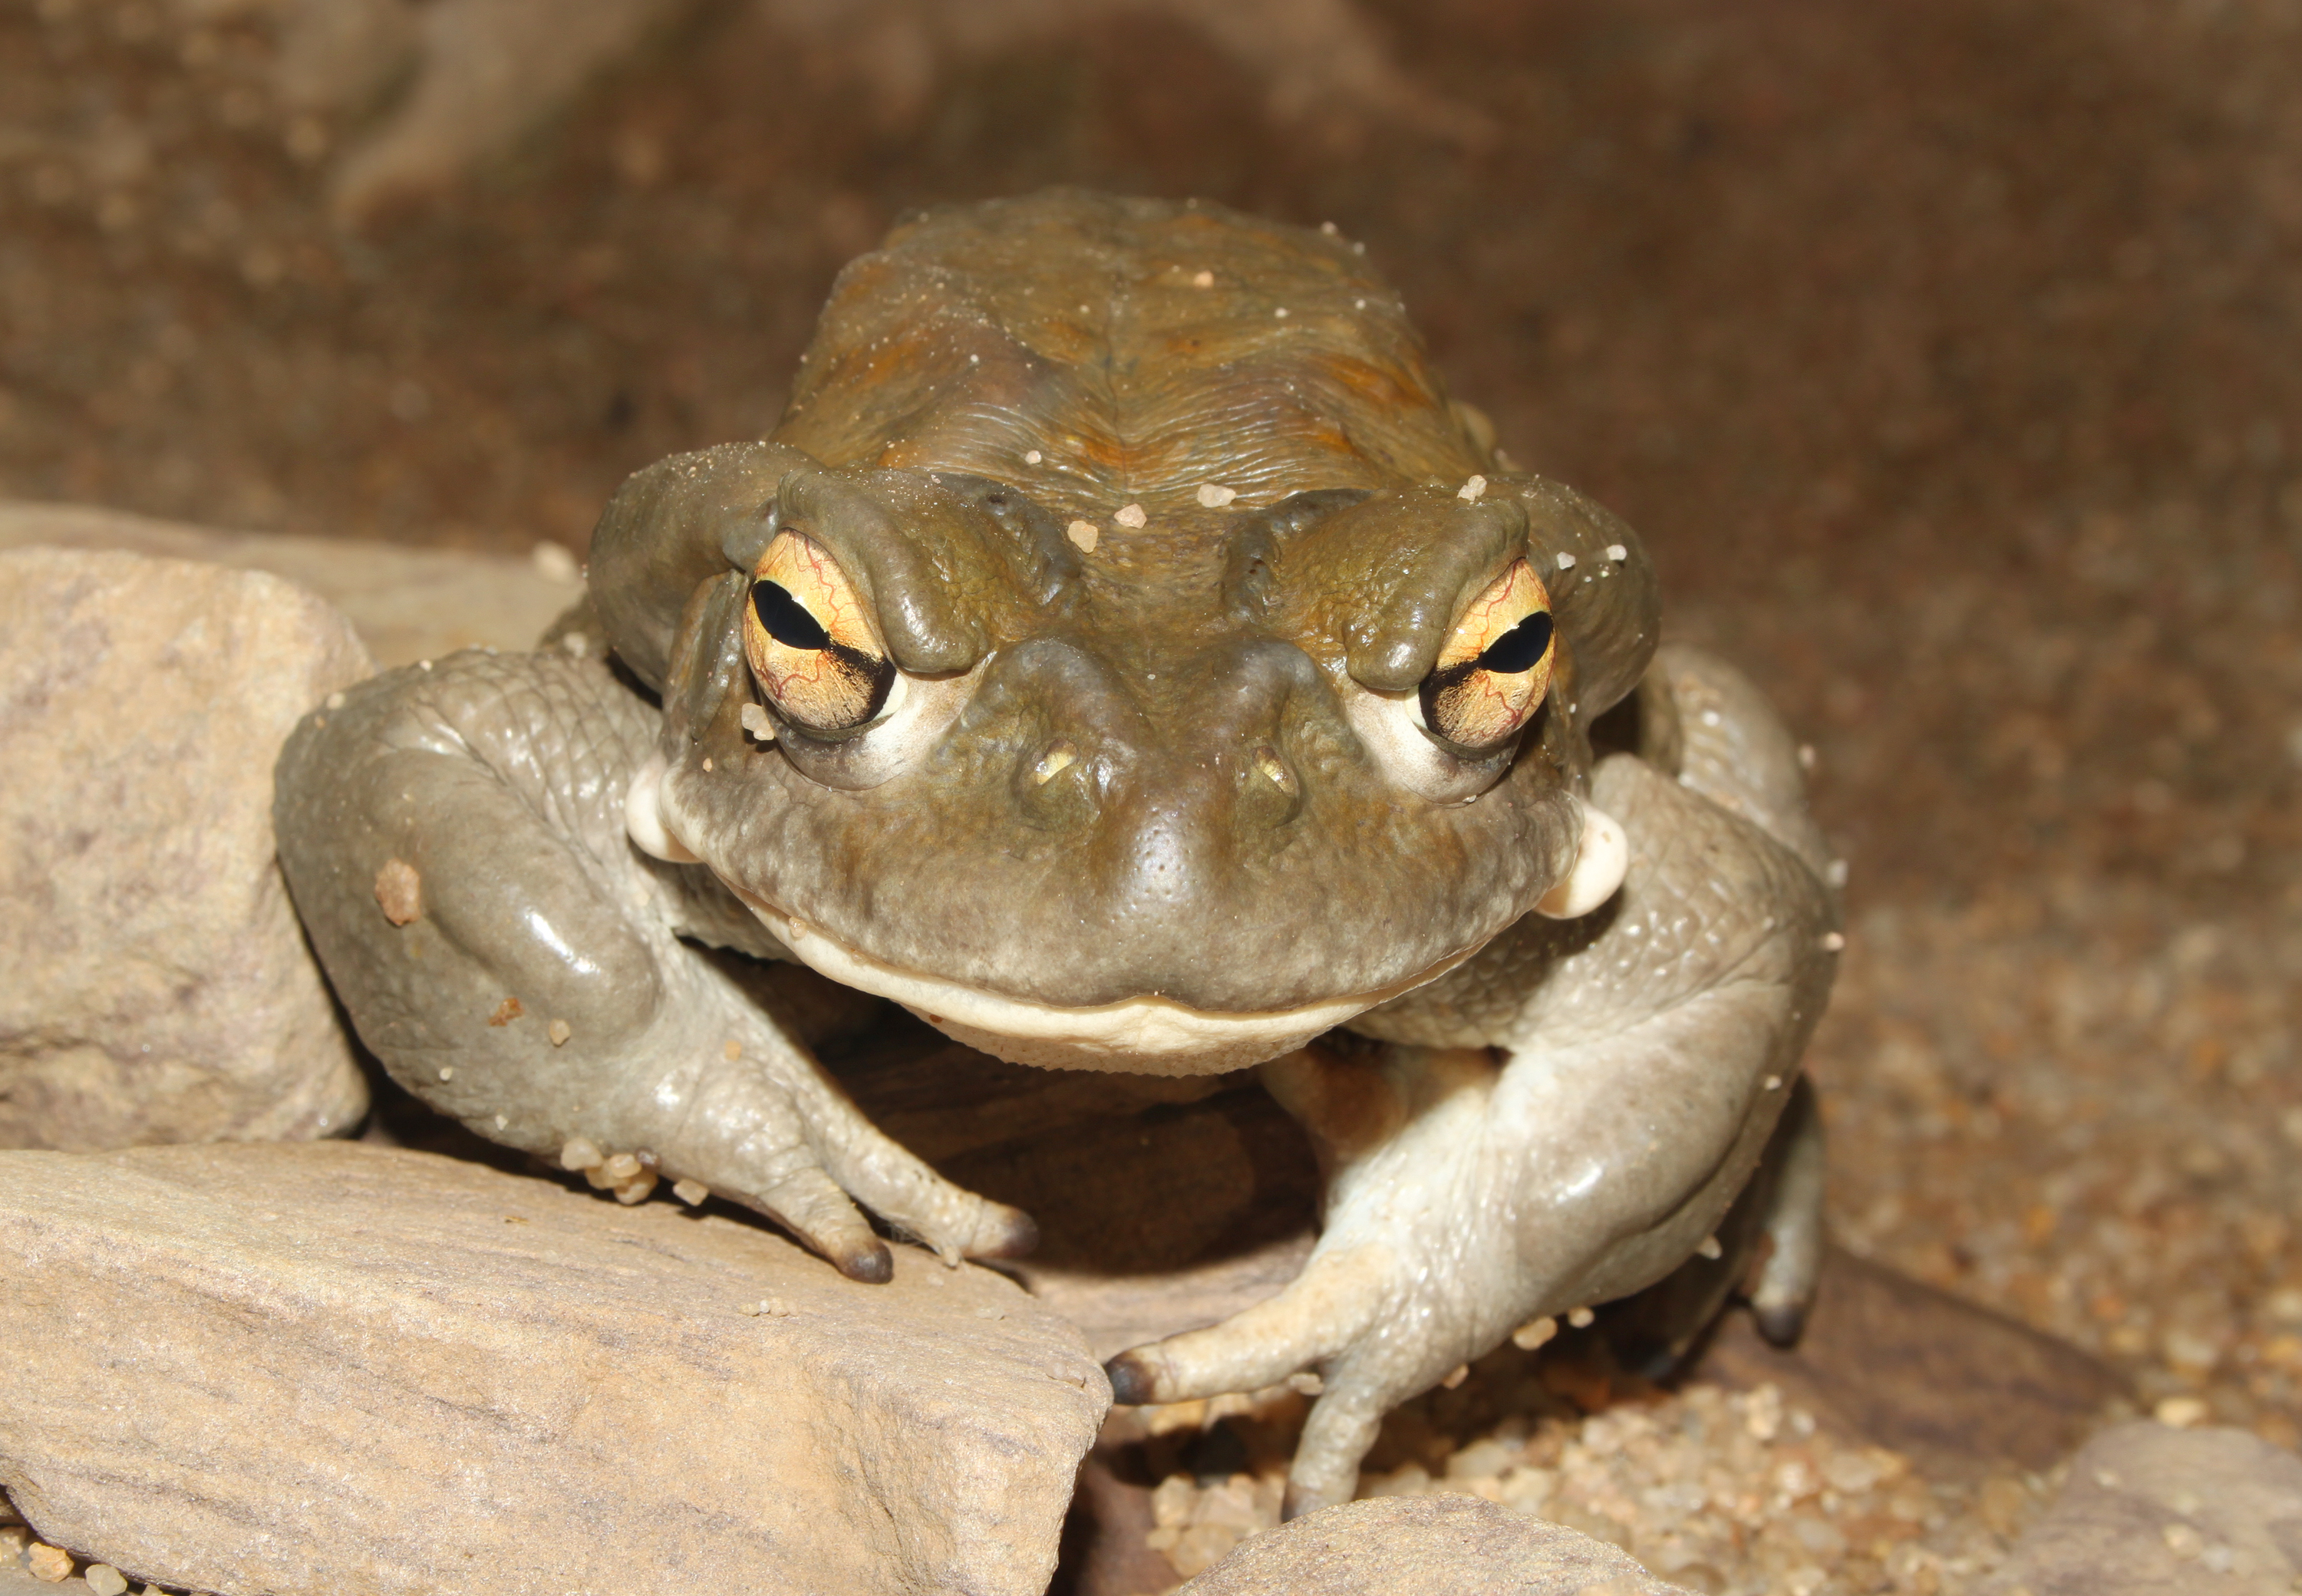 File:Bufo-alvarius-front.jpg - Wikimedia Commons